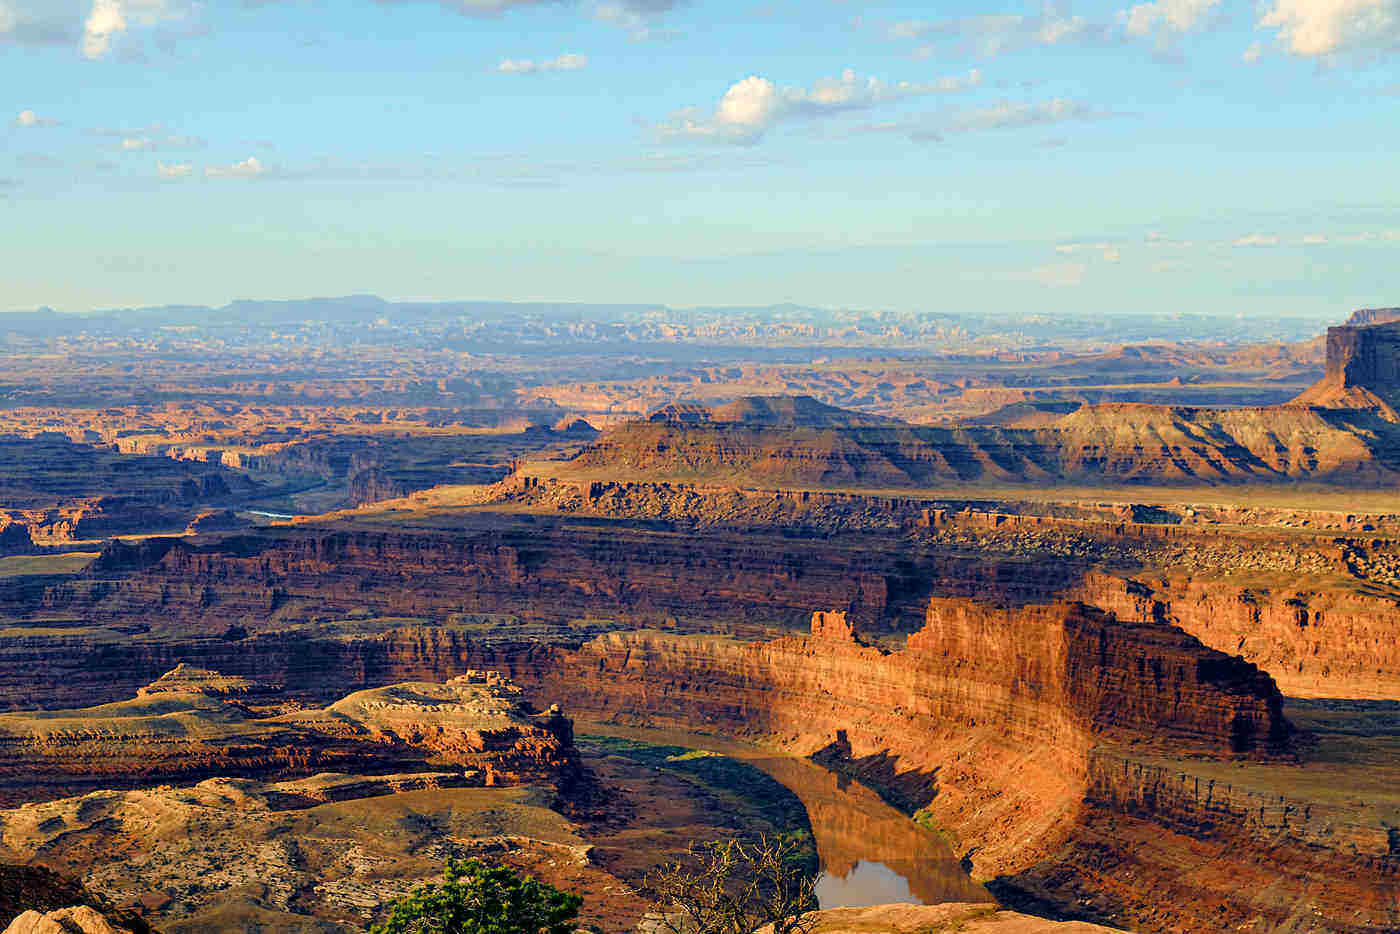 dead horse point state park - 11 best state parks in the united states